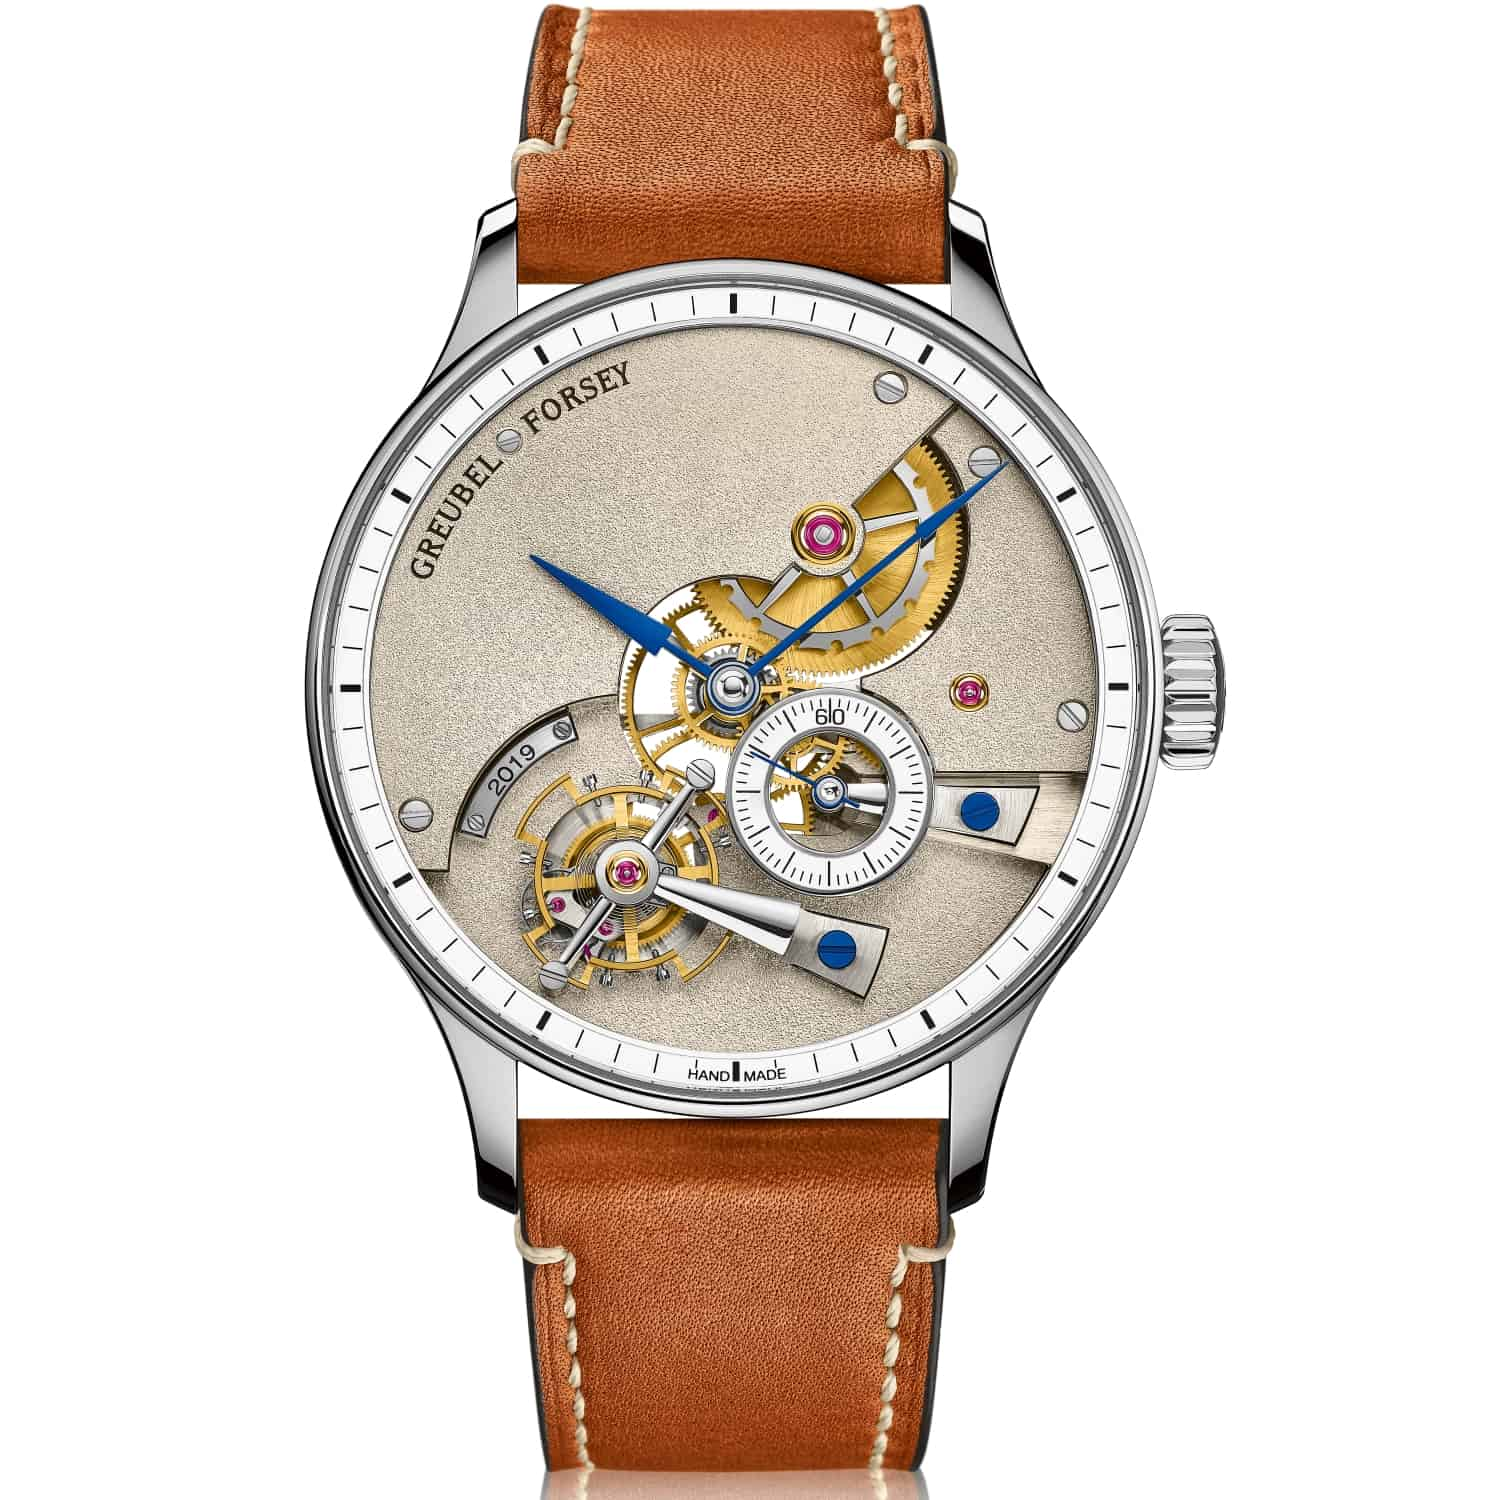 Greubel Forsey Hand Made 1 GPHG 2020